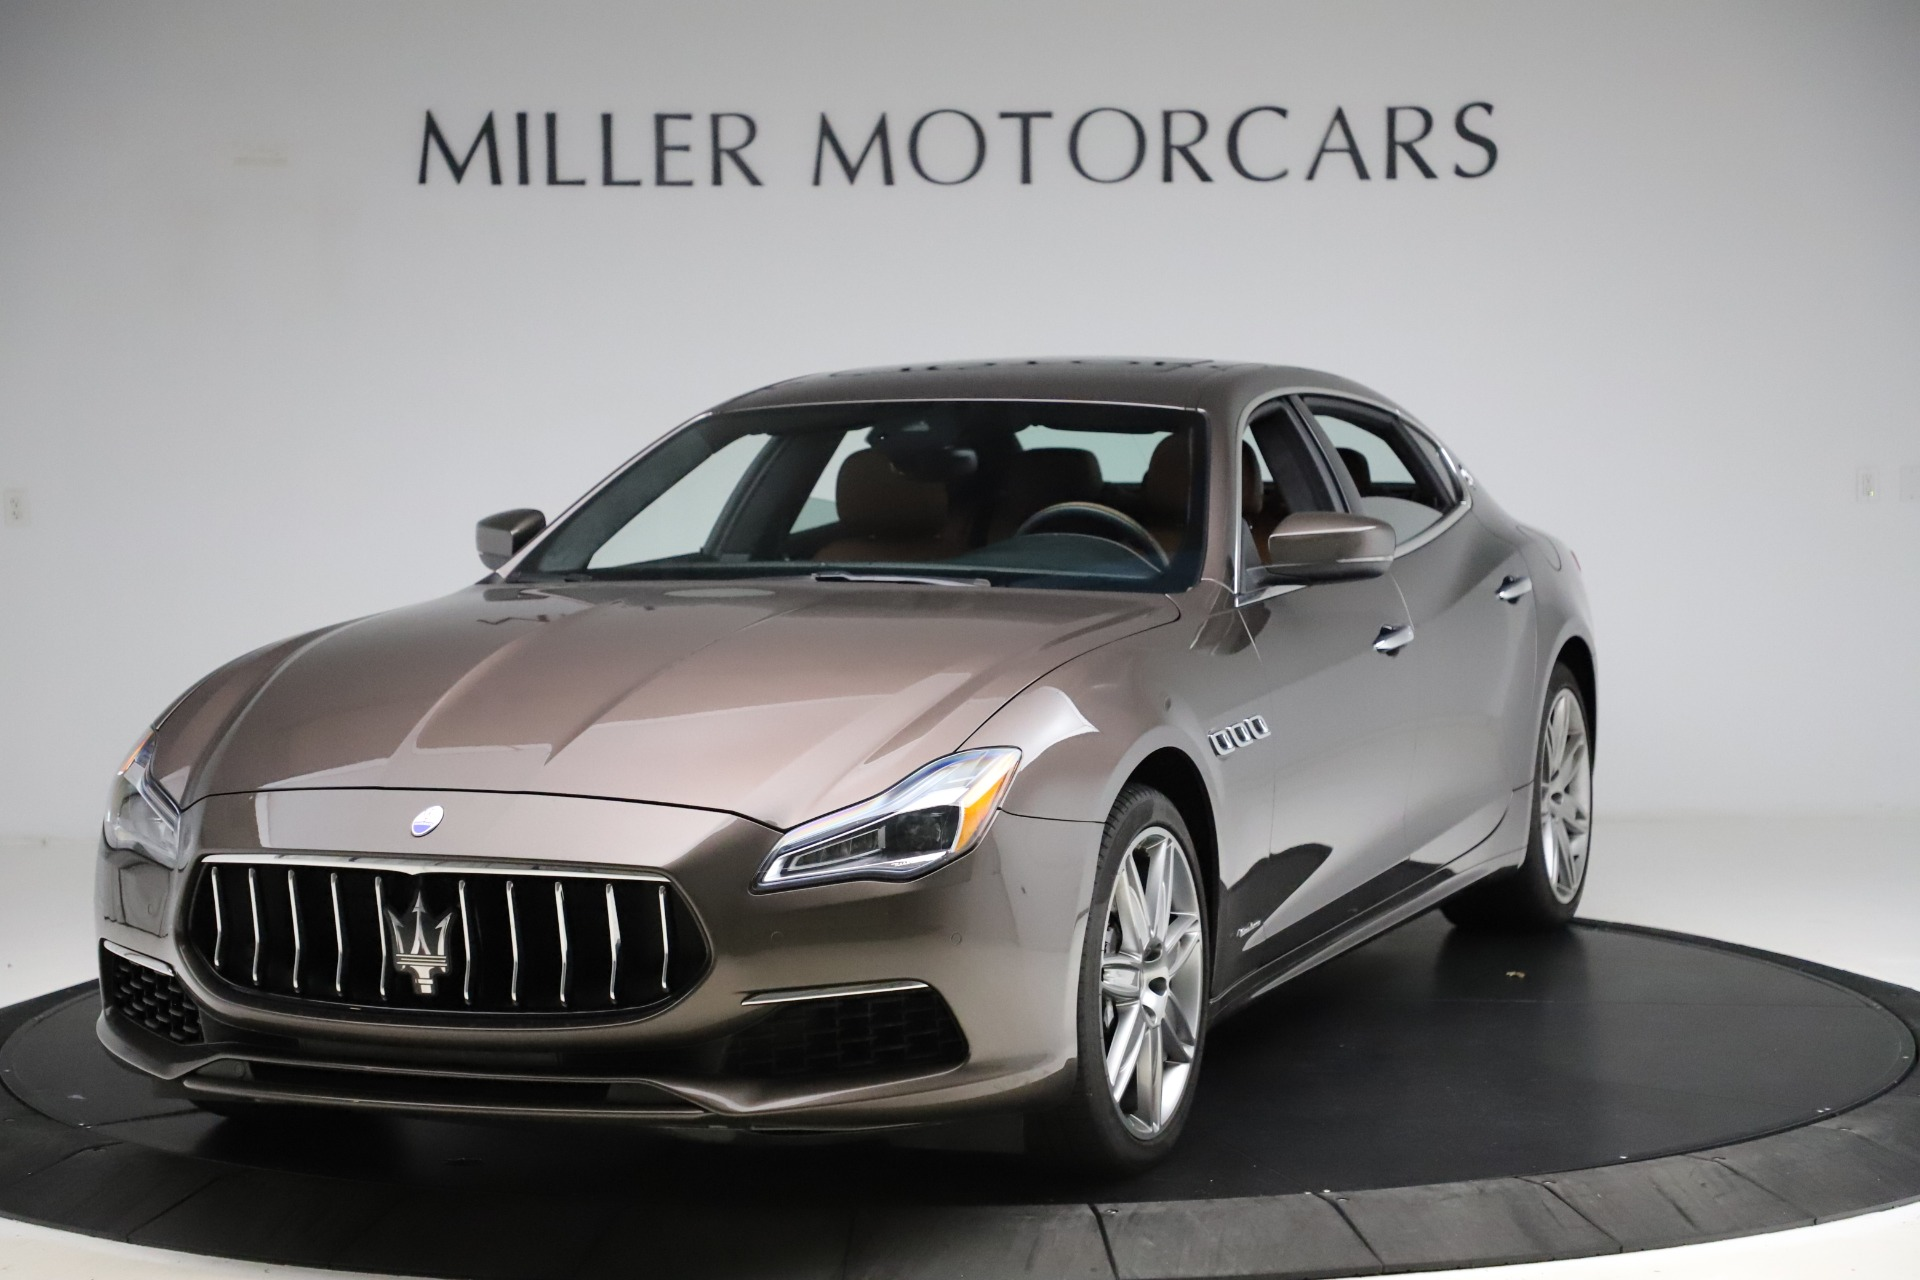 Used 2018 Maserati Quattroporte S Q4 GranLusso for sale Sold at Rolls-Royce Motor Cars Greenwich in Greenwich CT 06830 1